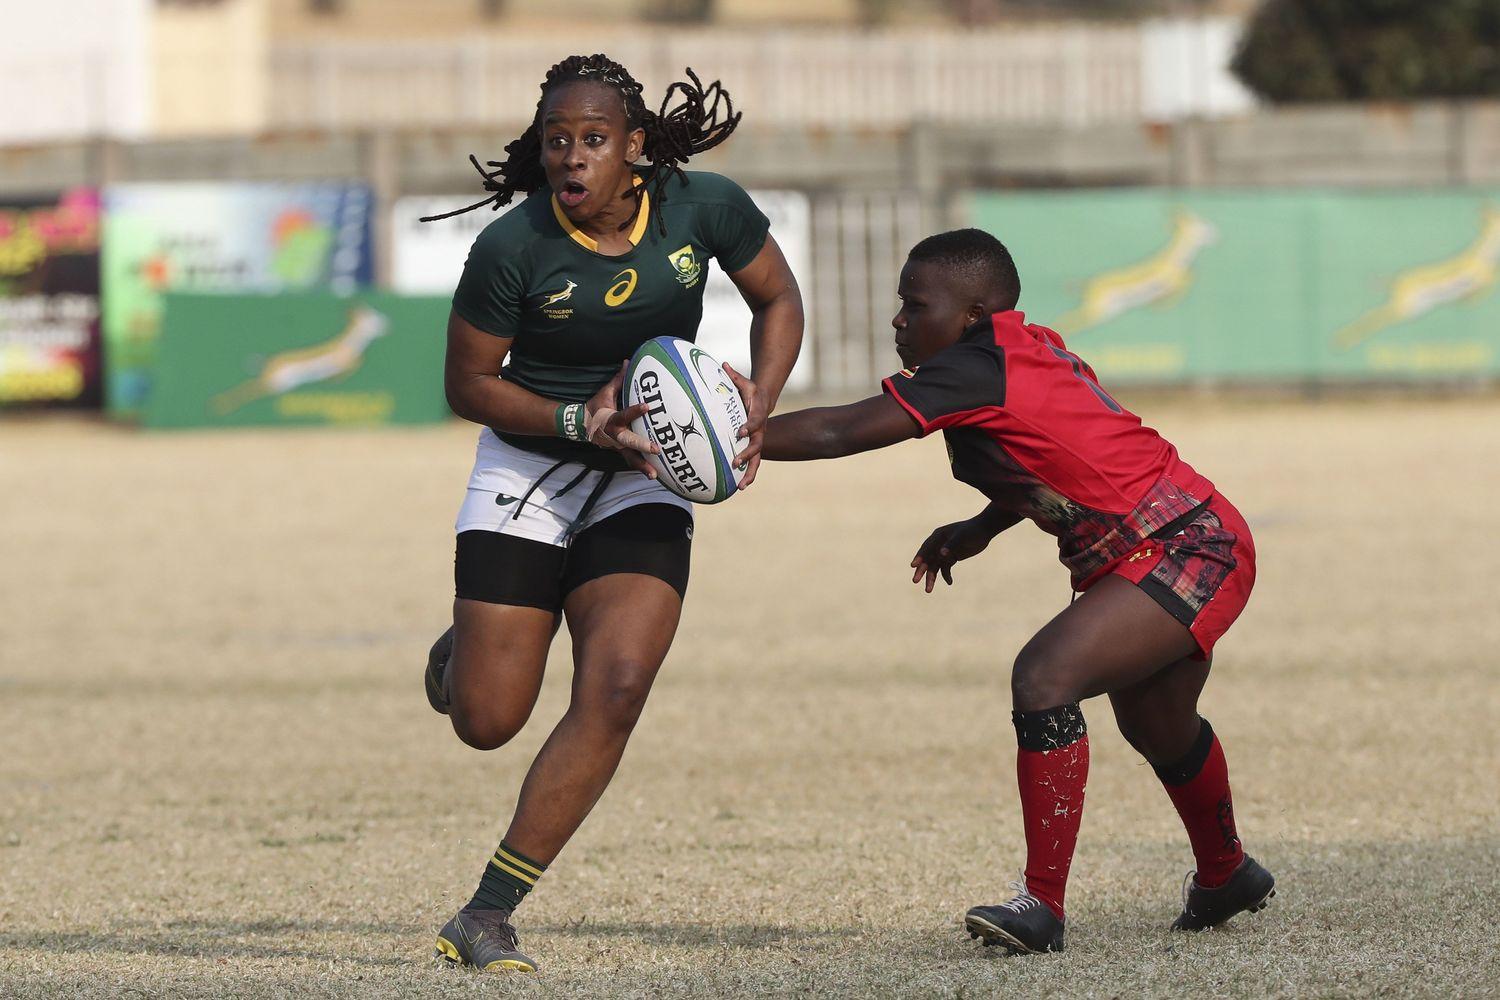 South Africa v Uganda - Rugby Africa Women's World Cup